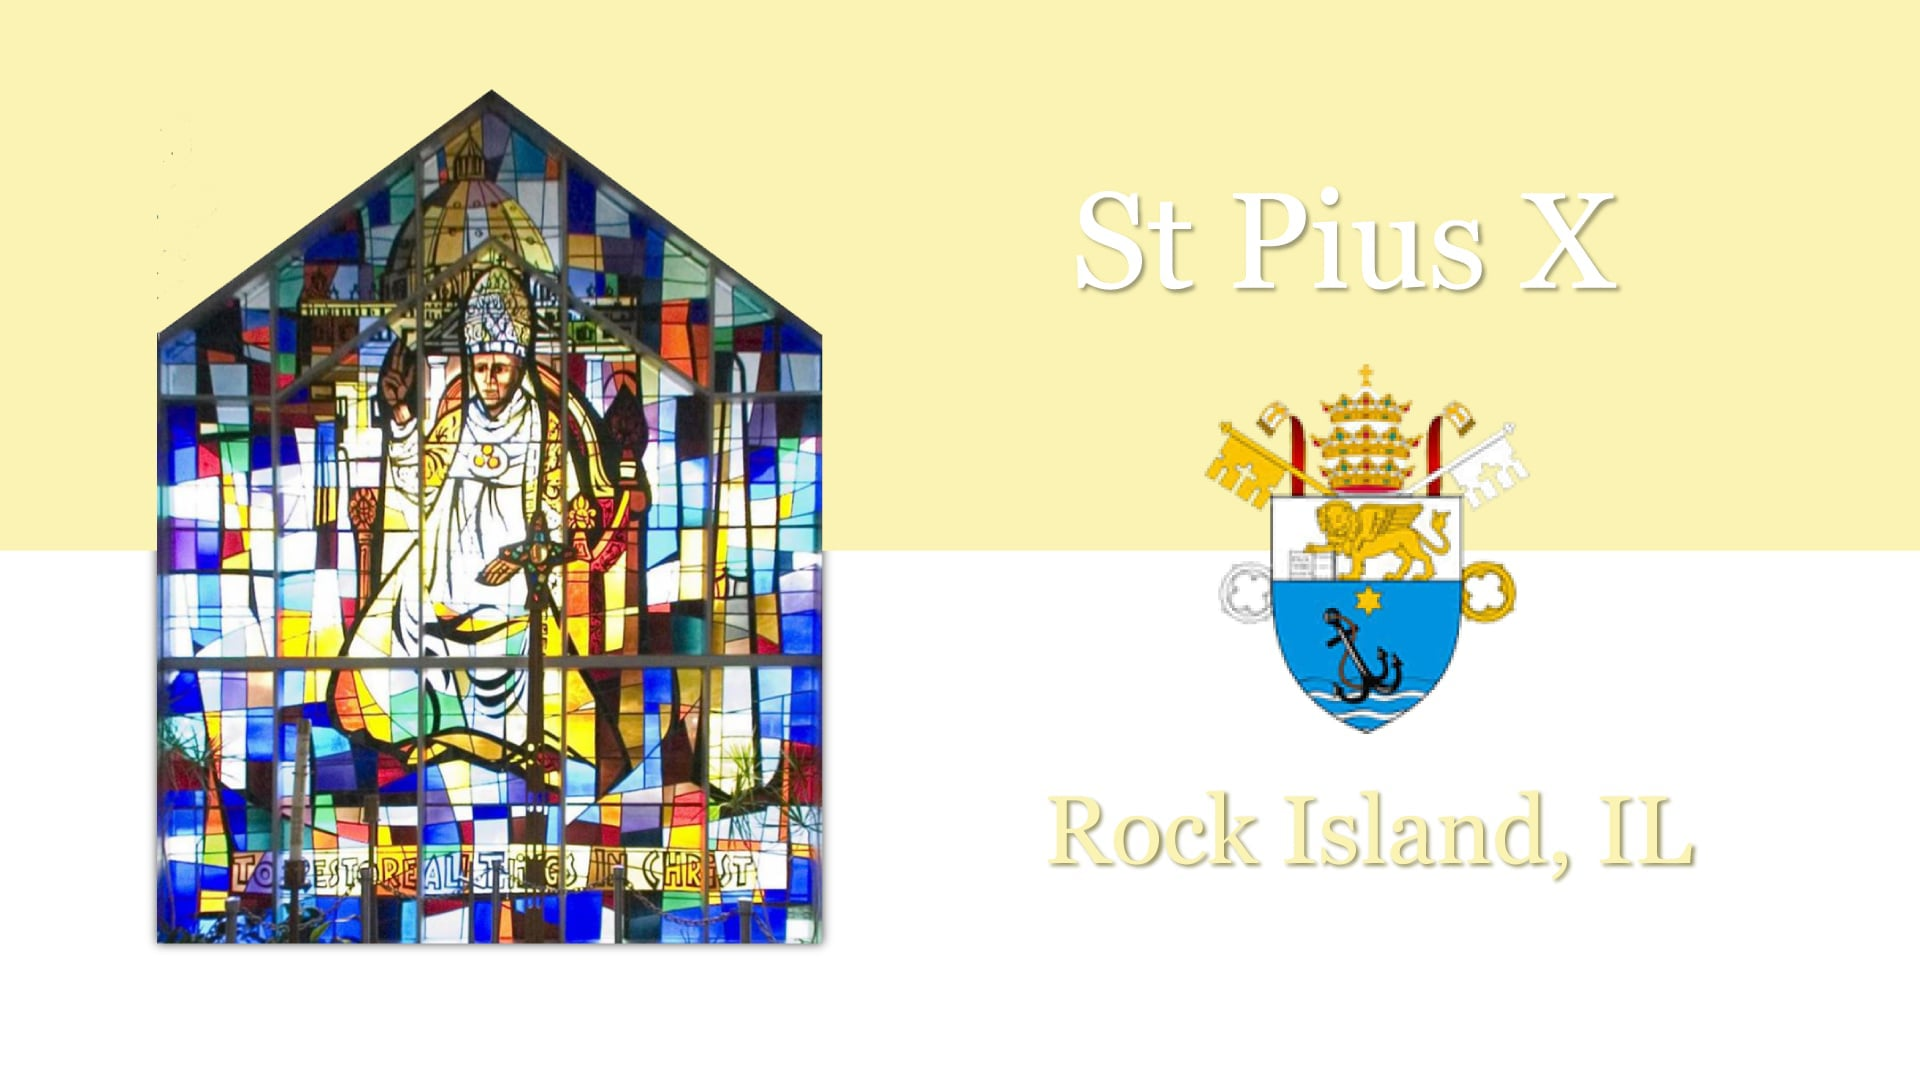 Fourth Sunday of Easter, April 25th, St Pius X, Rock Island